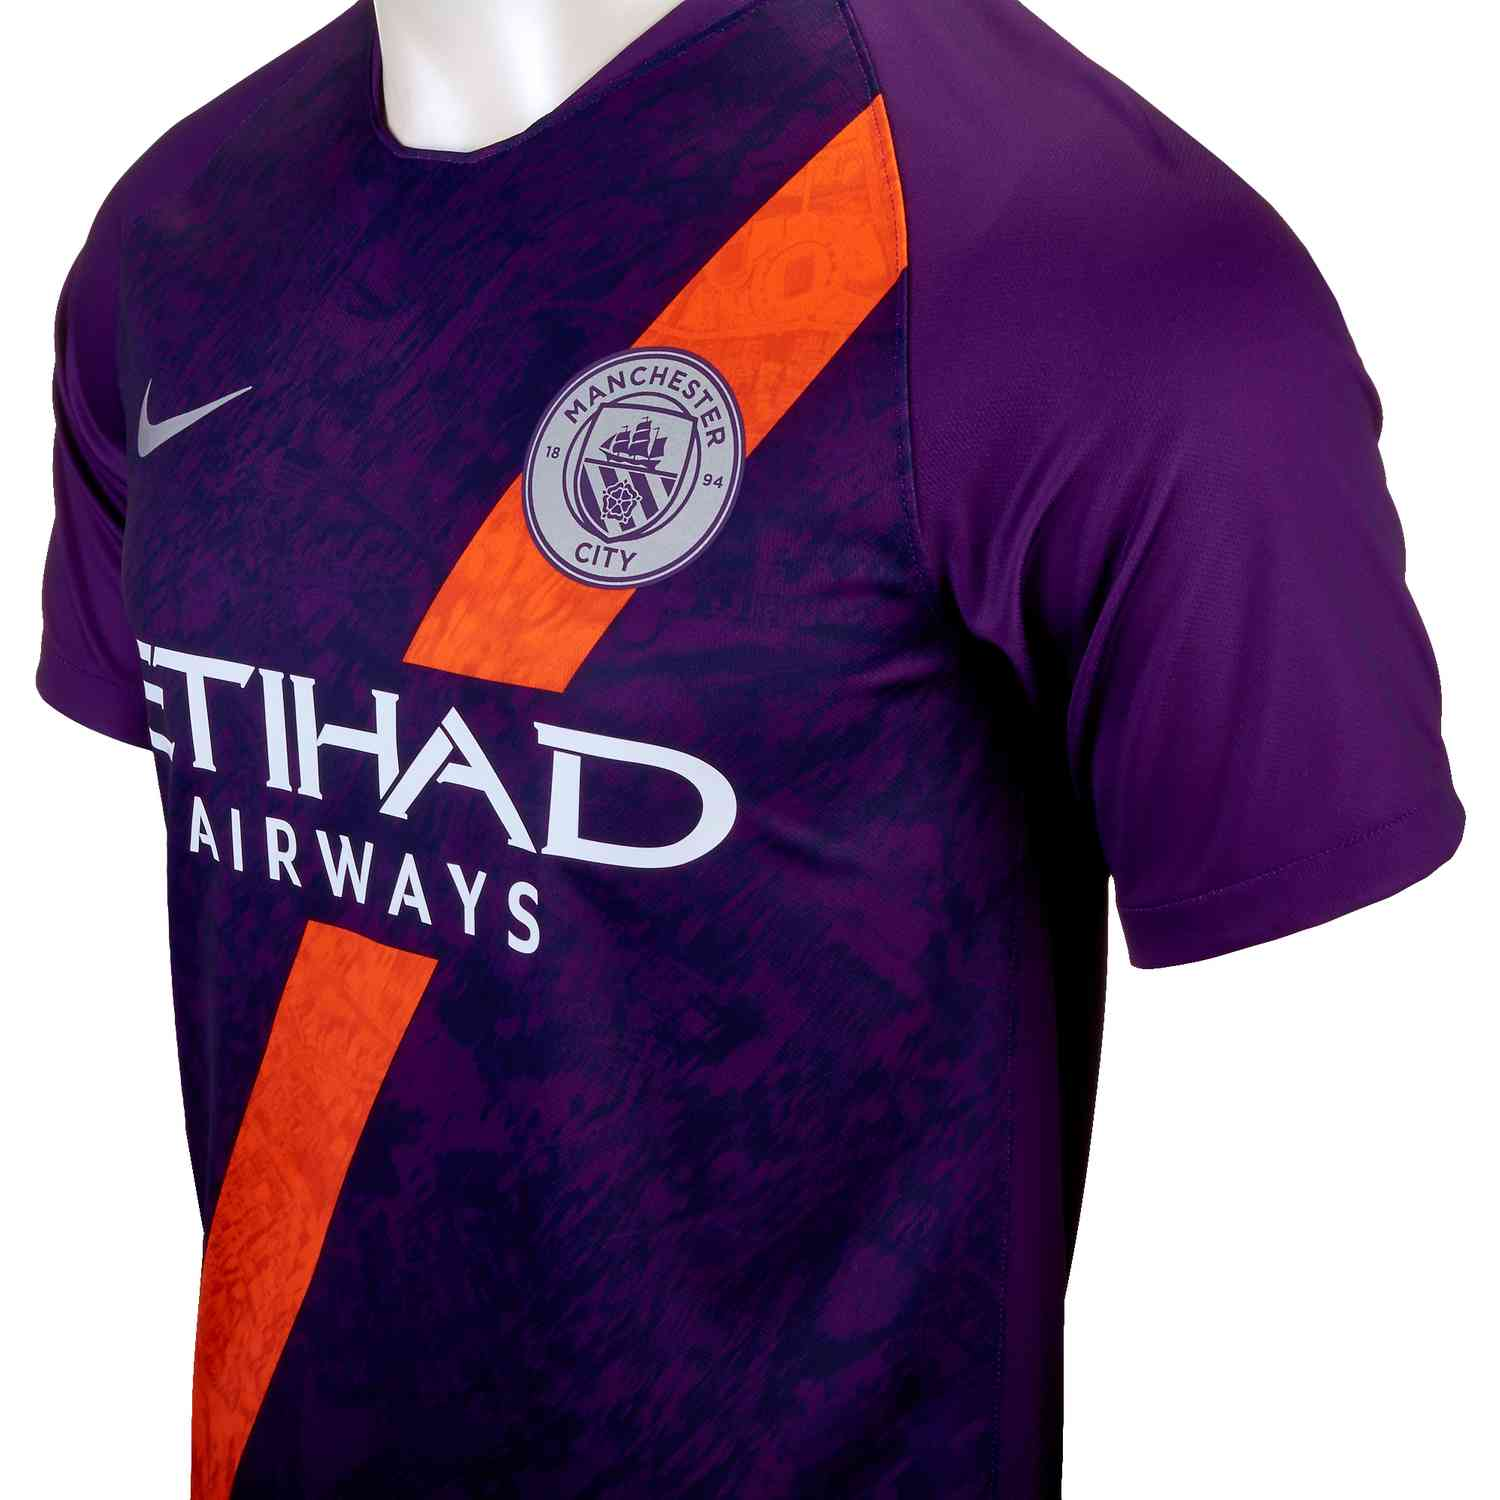 hot sale online 4c24f 4cb33 2018/19 Nike Manchester City 3rd Jersey - Soccer Master